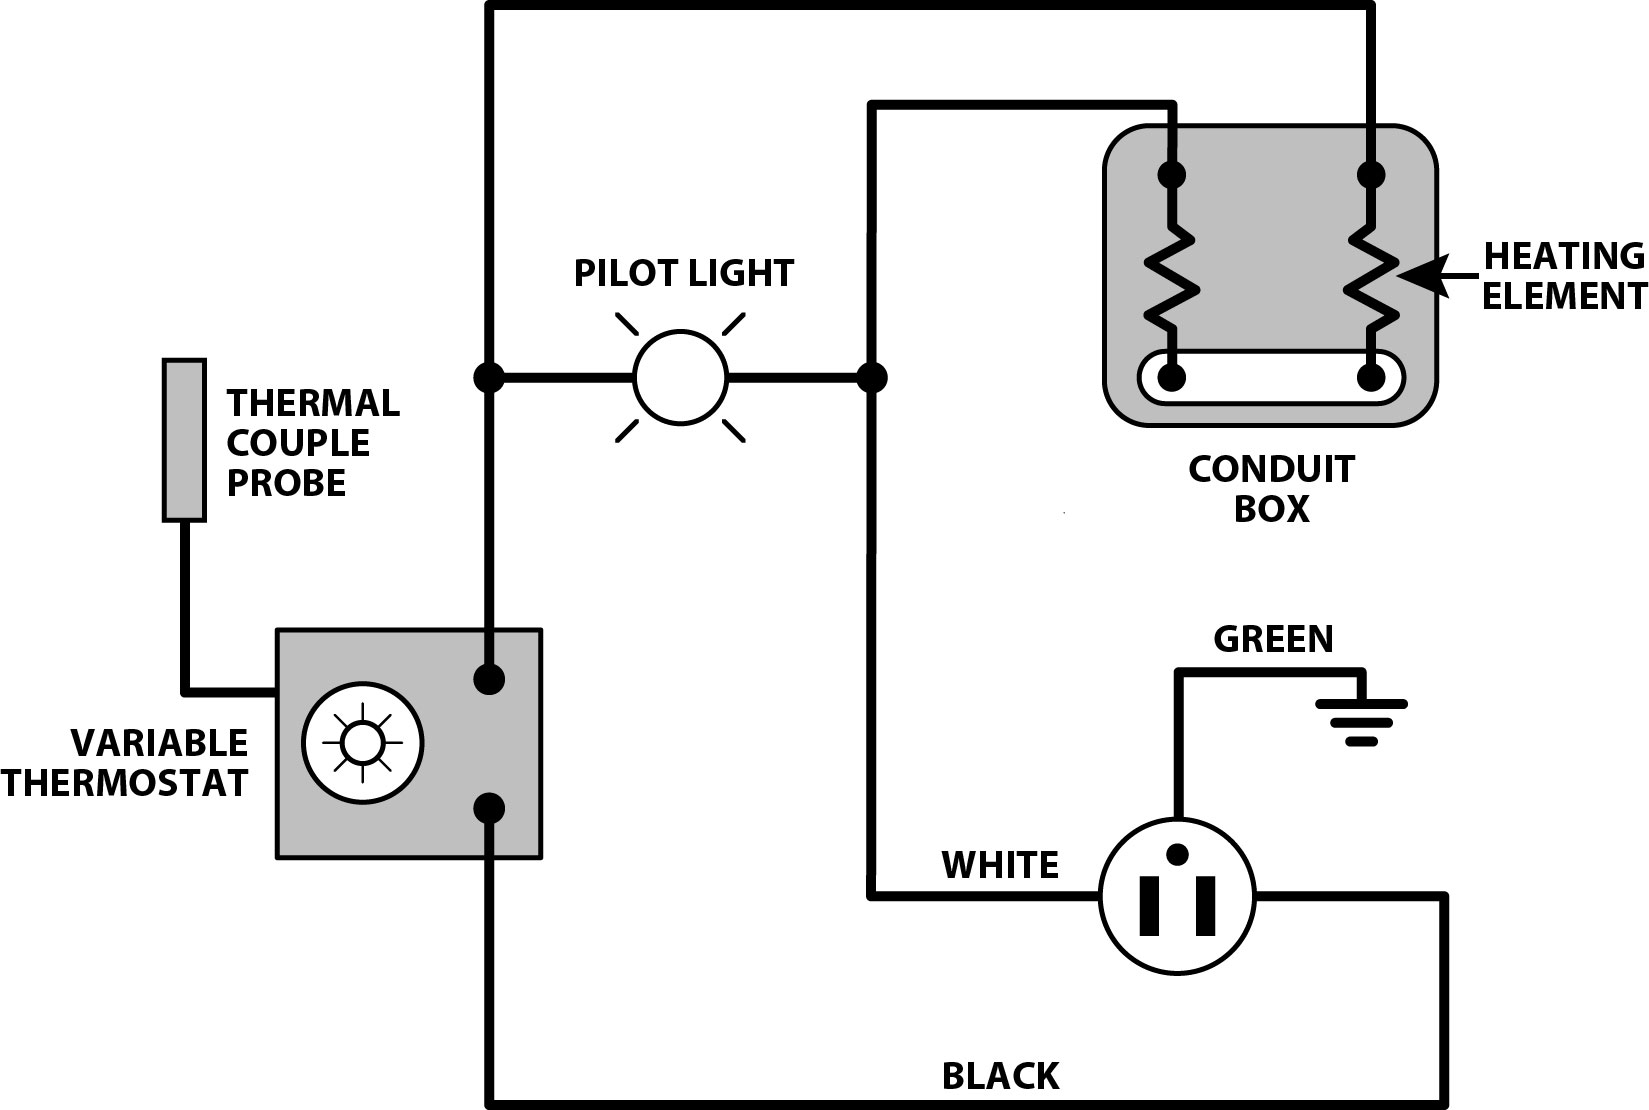 hight resolution of 3 wire 240 oven wiring diagrams wiring diagram nl 4 wire 240 volt wiring